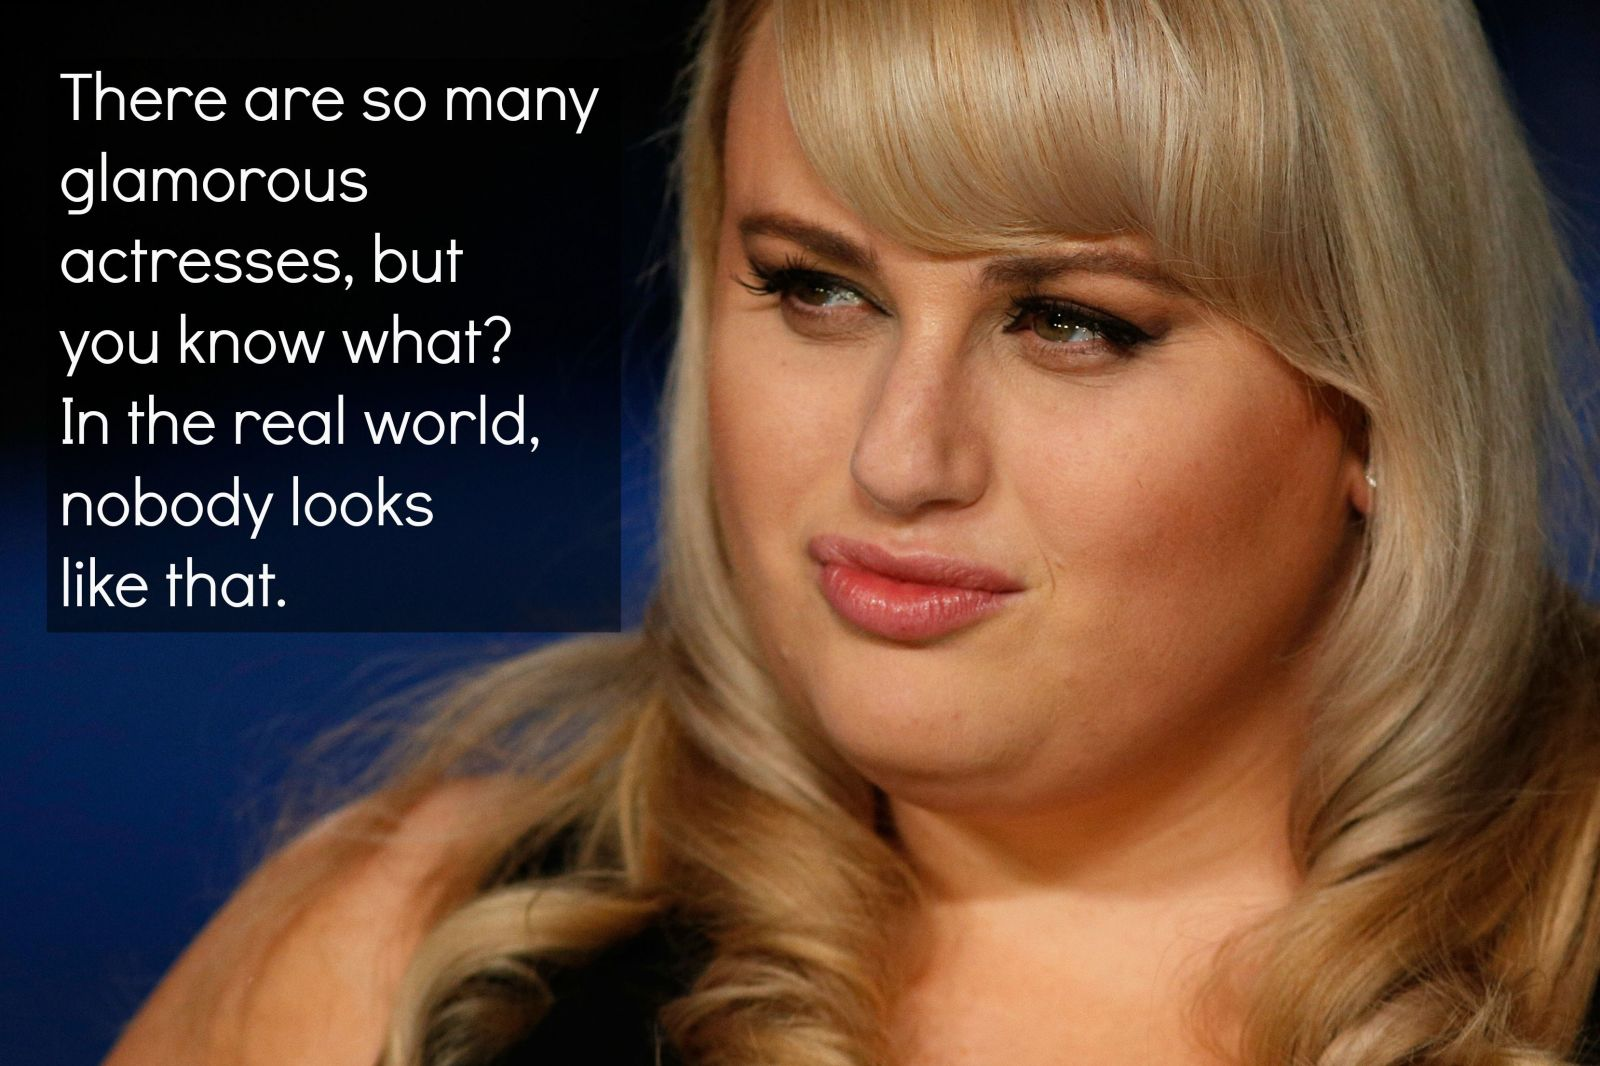 gallery_nrm_1431594214-rebel-wilson-quotes-1